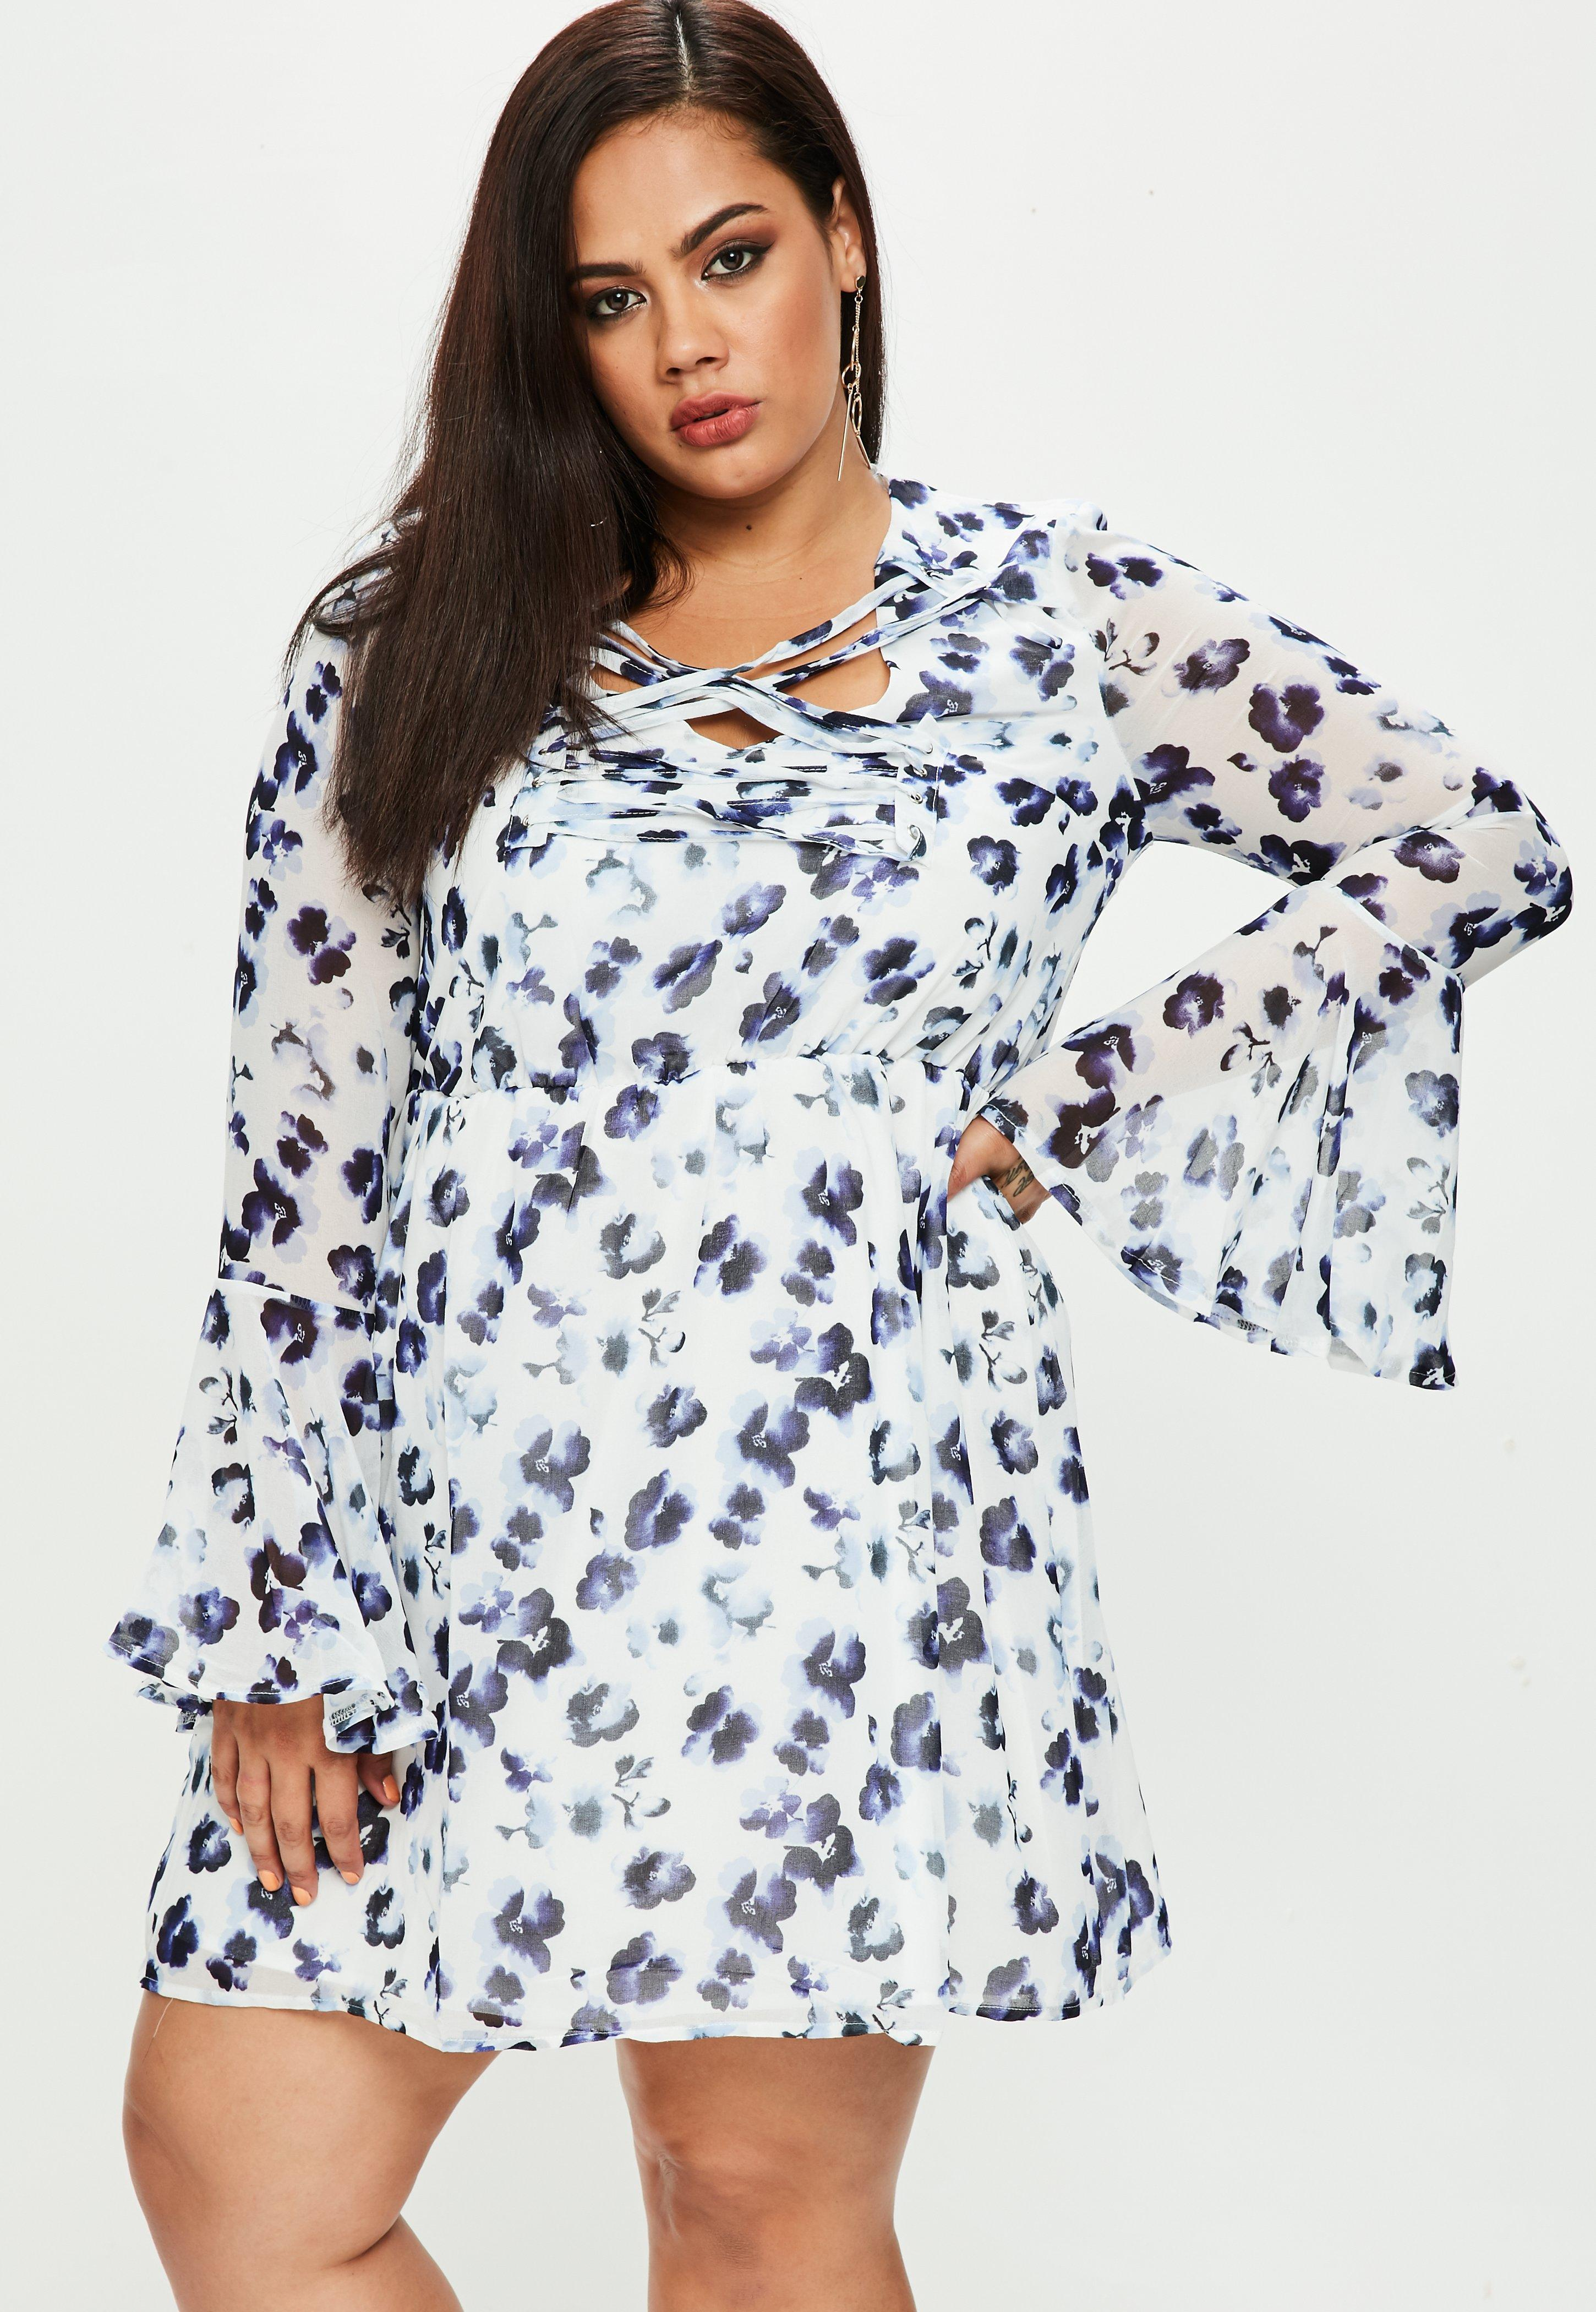 Prices Sale Online Pre Order For Sale Missguided Plus Size Floral Print Lace Up Dress Cheap In China Outlet 2018 Newest Sale 2018 Unisex WzIQsQ